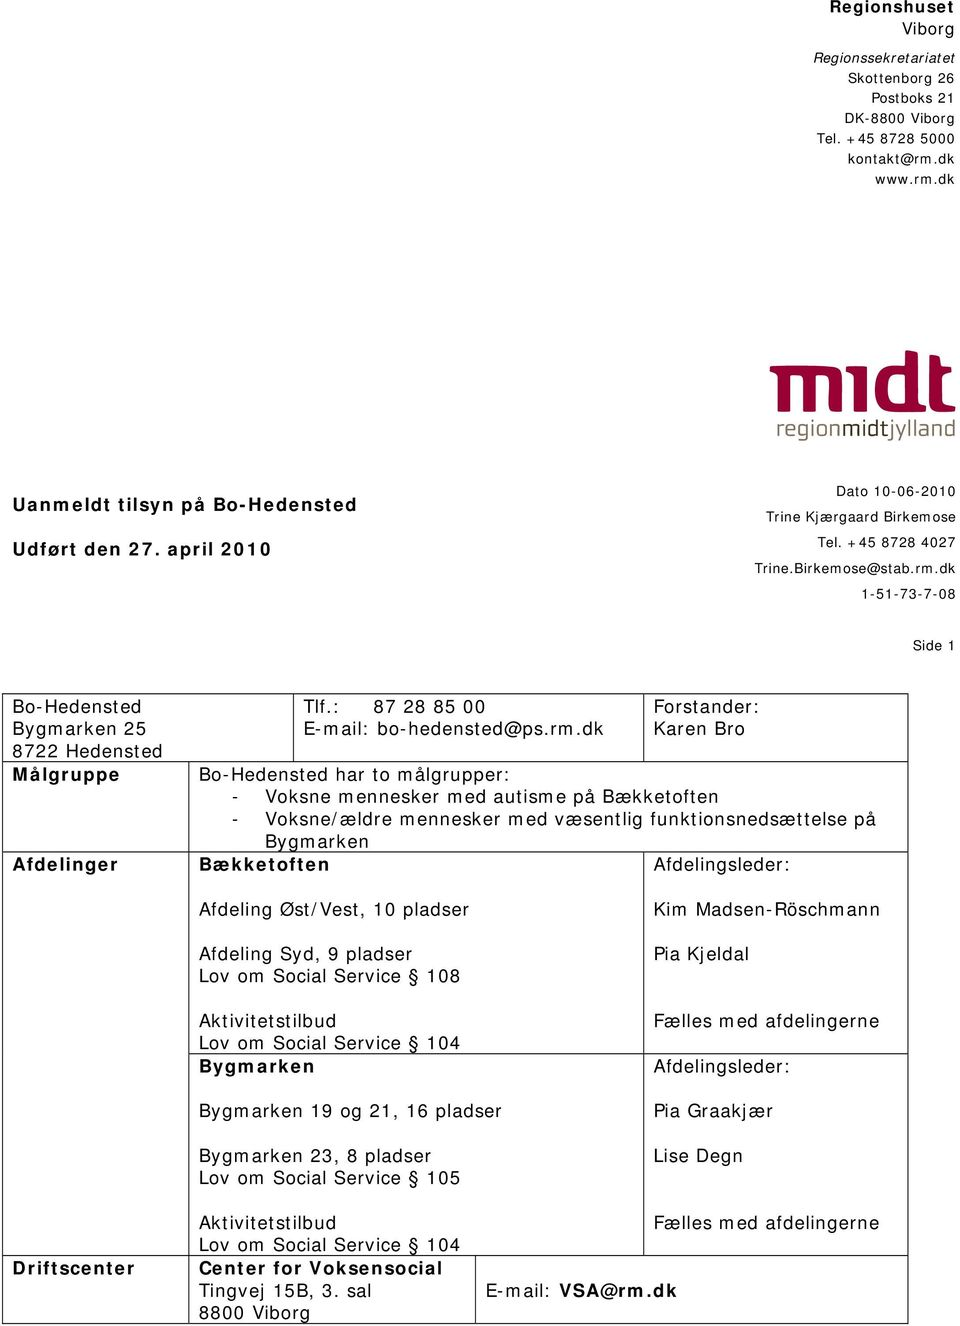 : 87 28 85 00 E-mail: bo-hedensted@ps.rm.